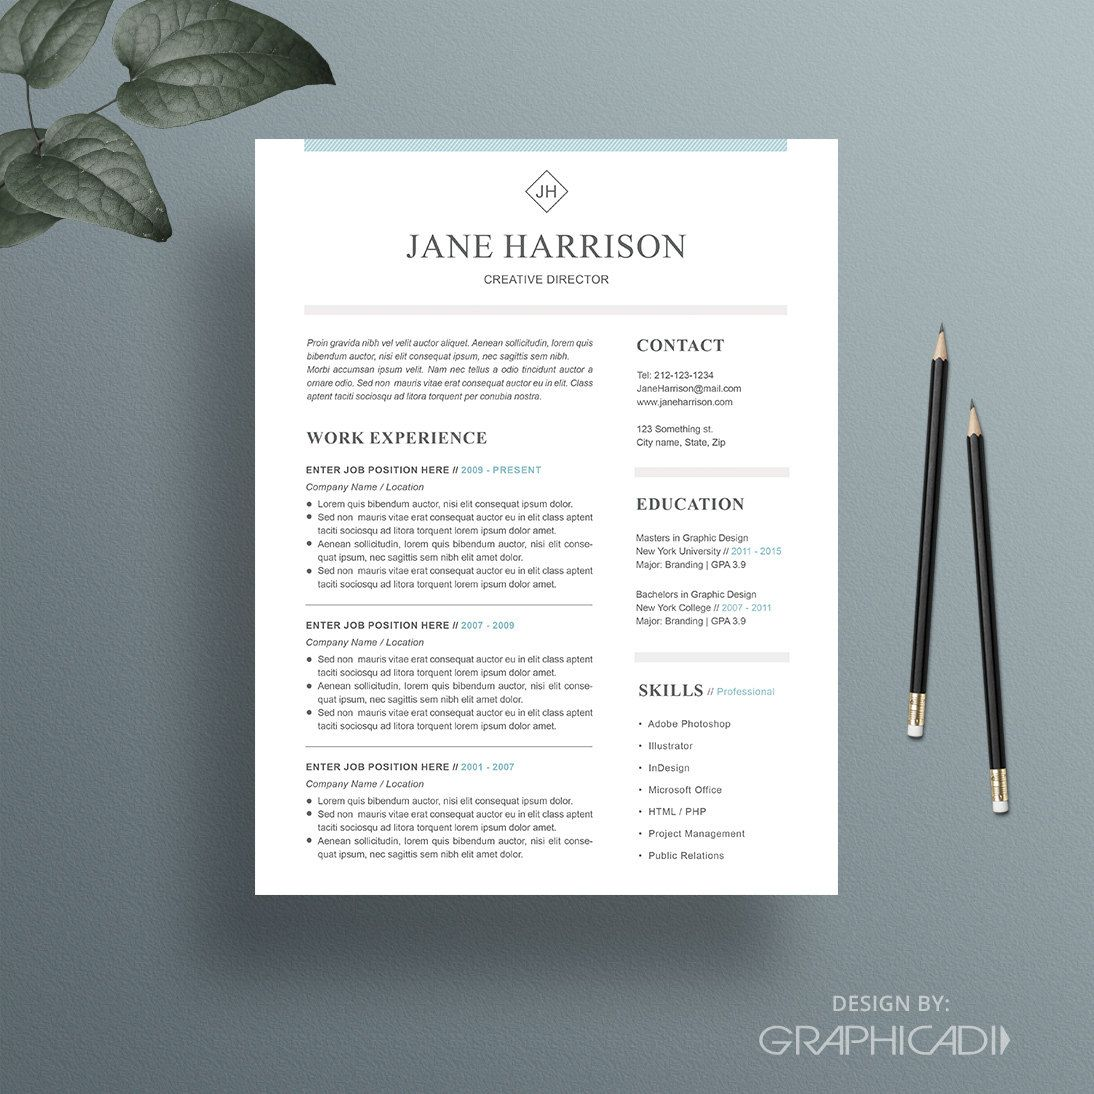 resume template cover letter template word resume template cv template iwork pages resume template professional resume resume - Making Resume In Word